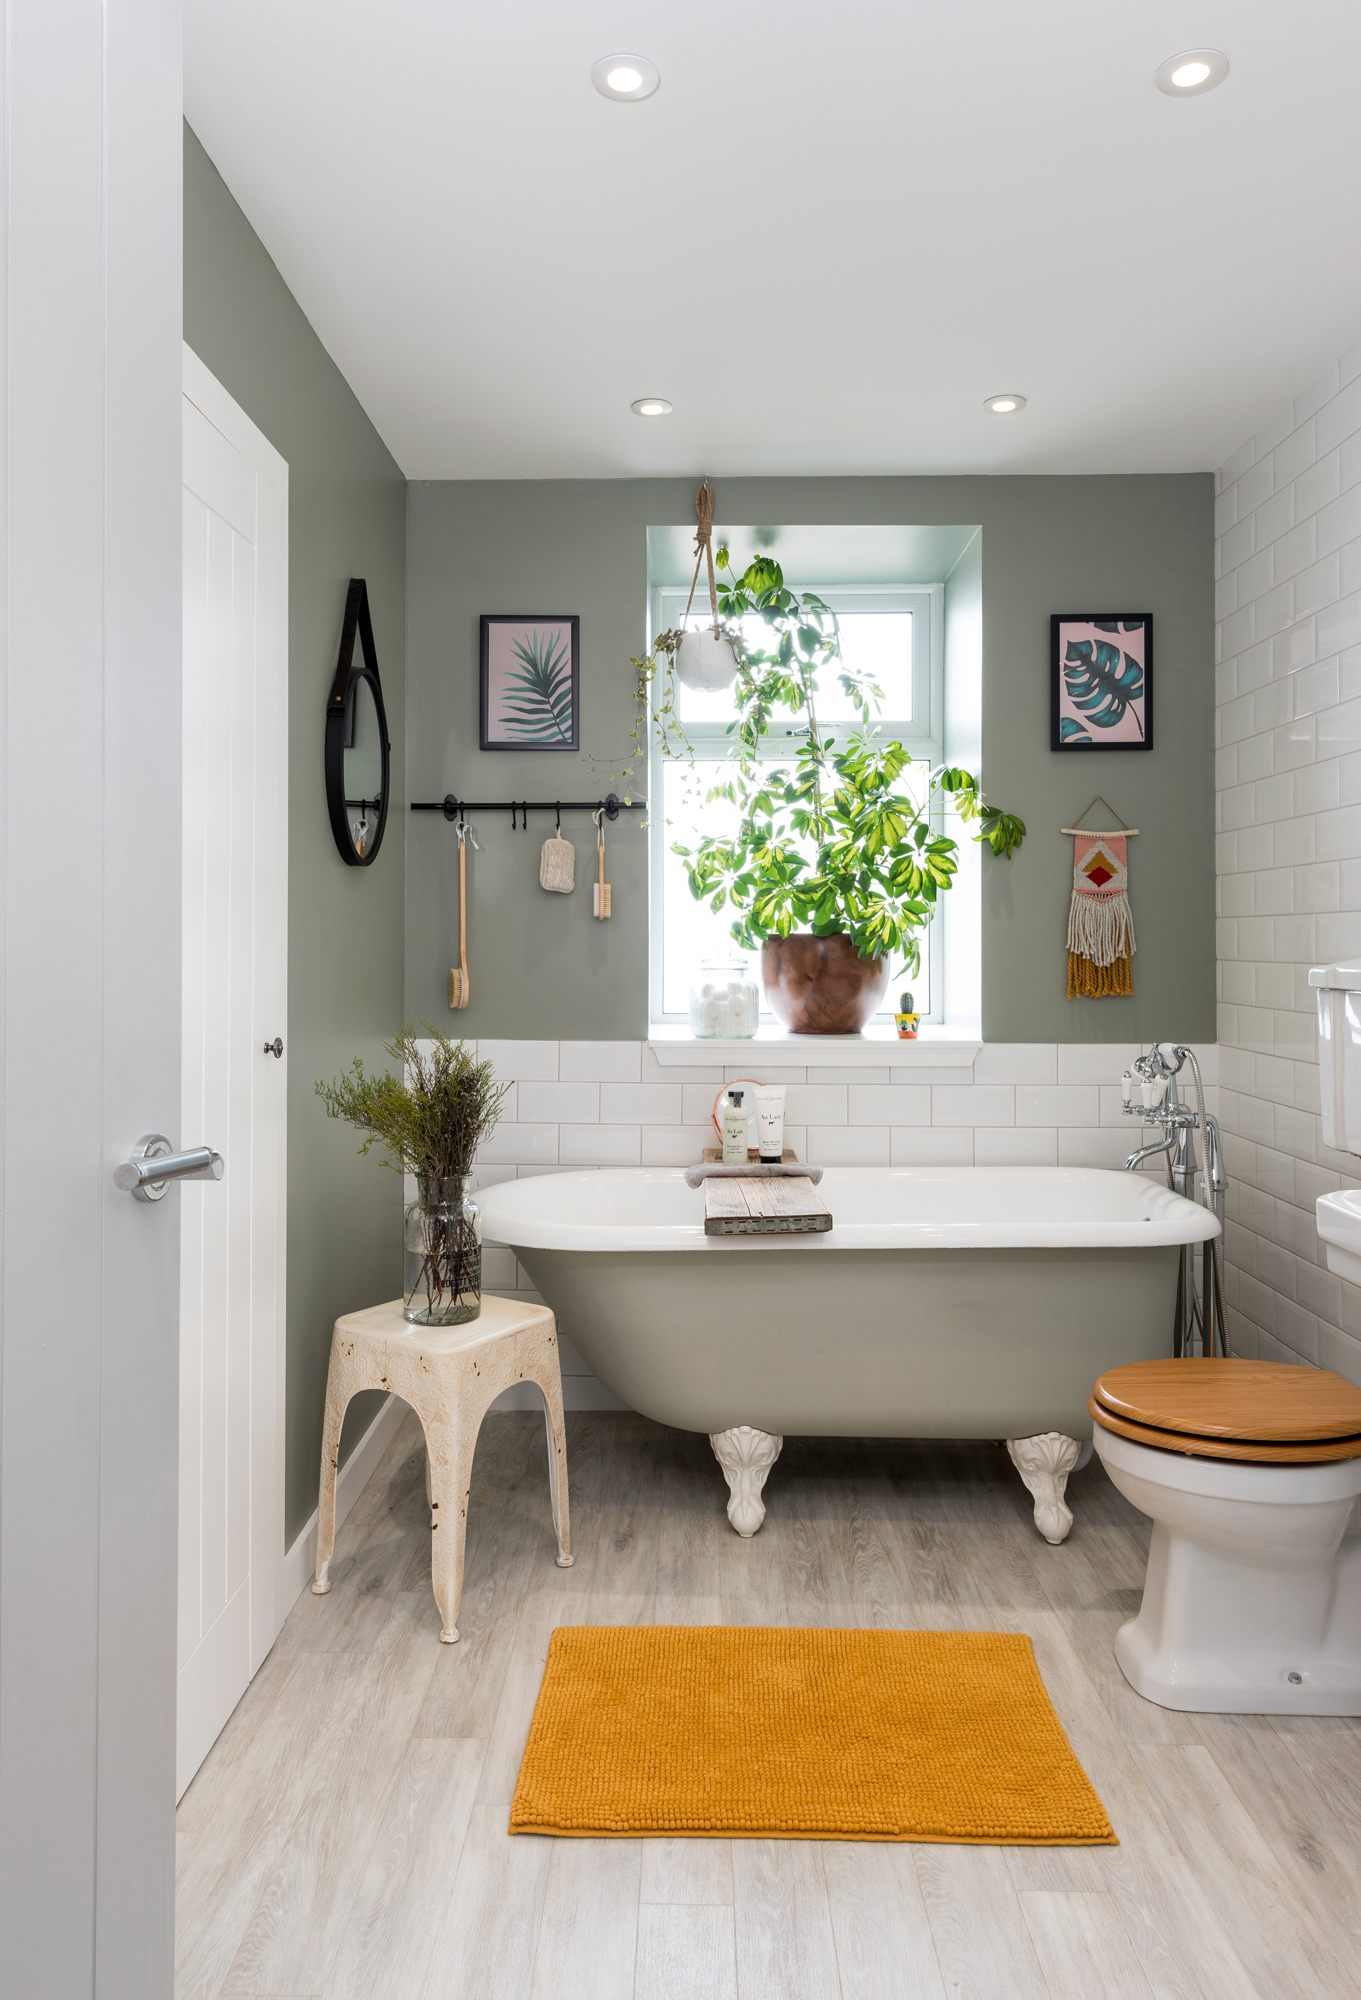 How to remodel a small bathroom | Real Homes